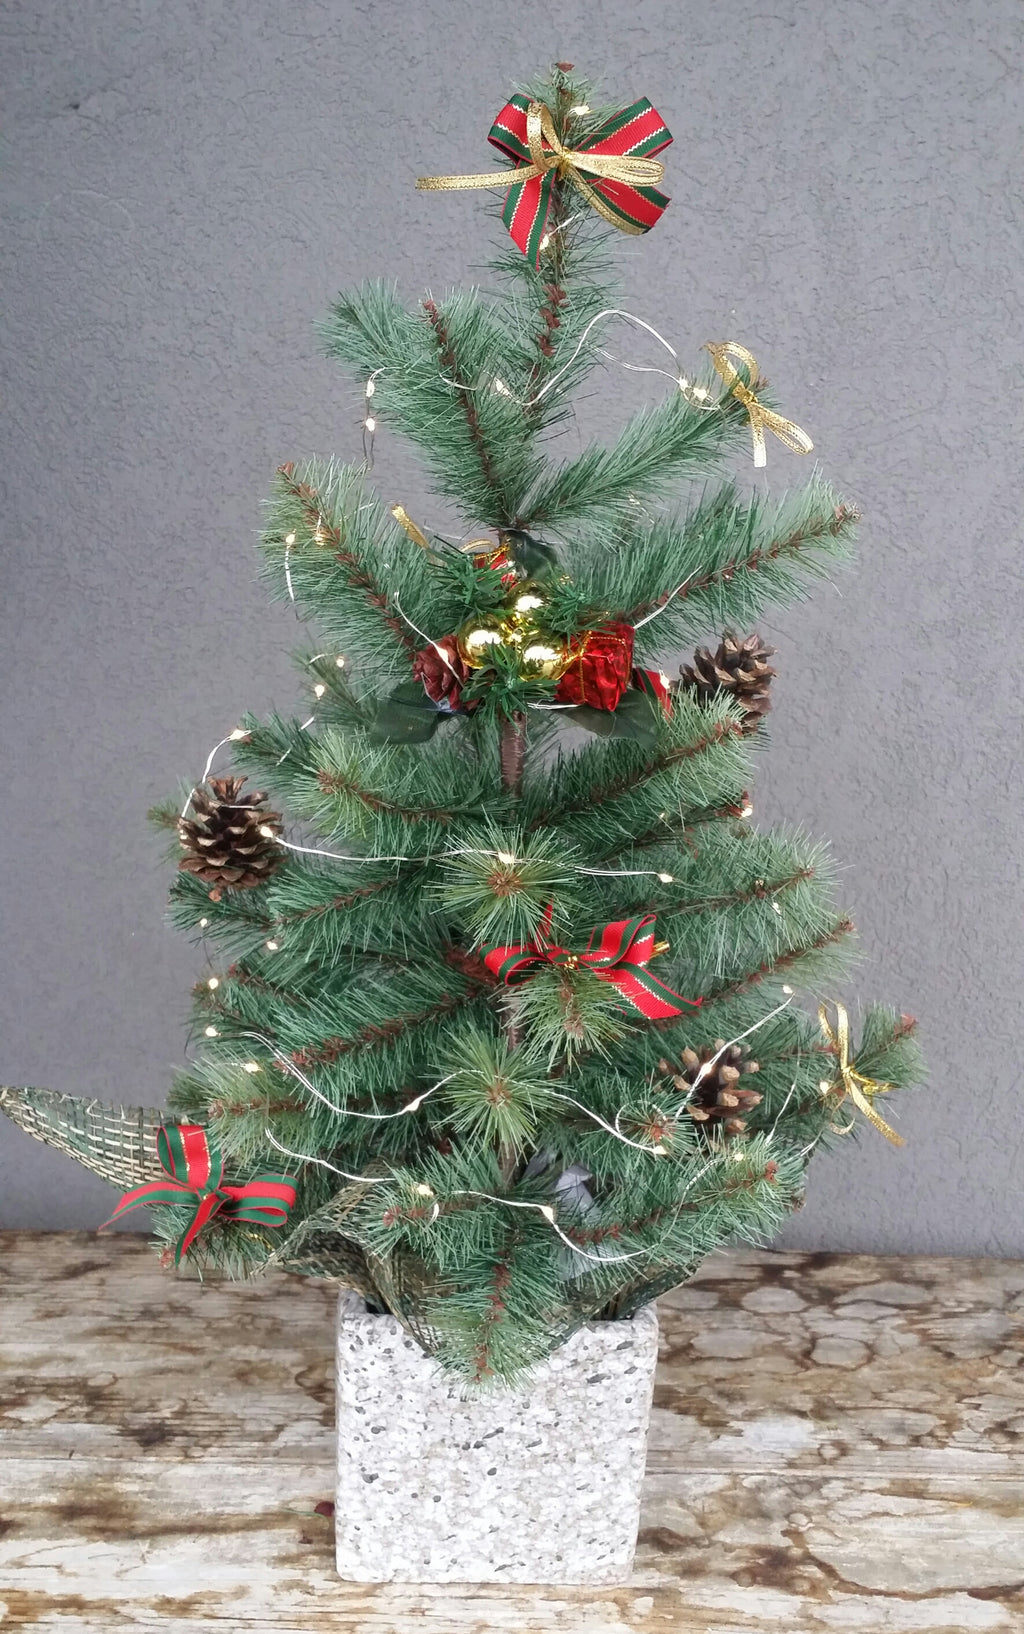 HX-11 Artificial Christmas Tree